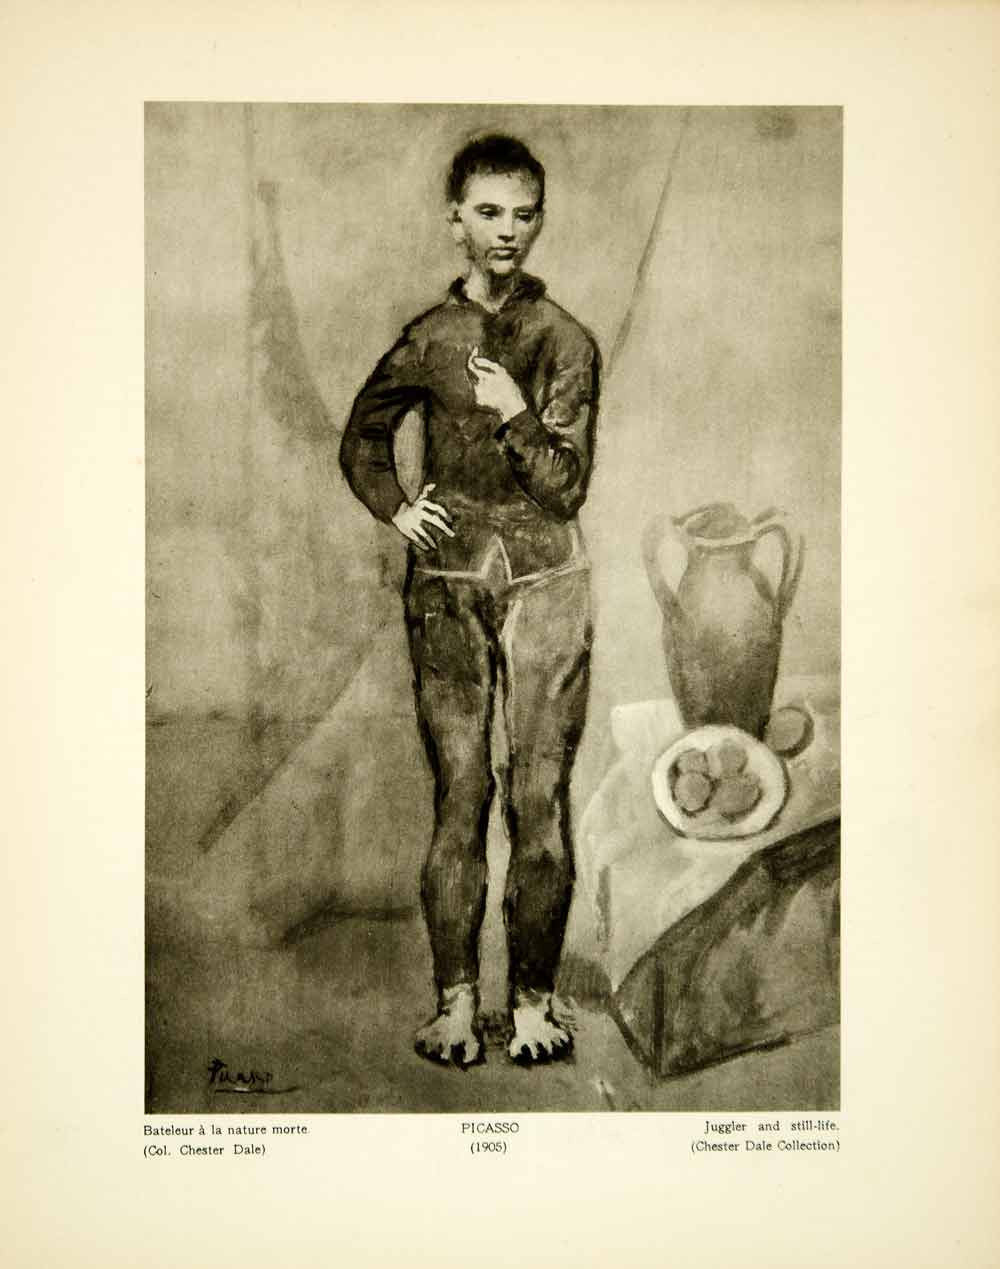 1931 Photogravure Pablo Picasso Art Juggler With Still Life Portrait Circus YMF2 - Period Paper